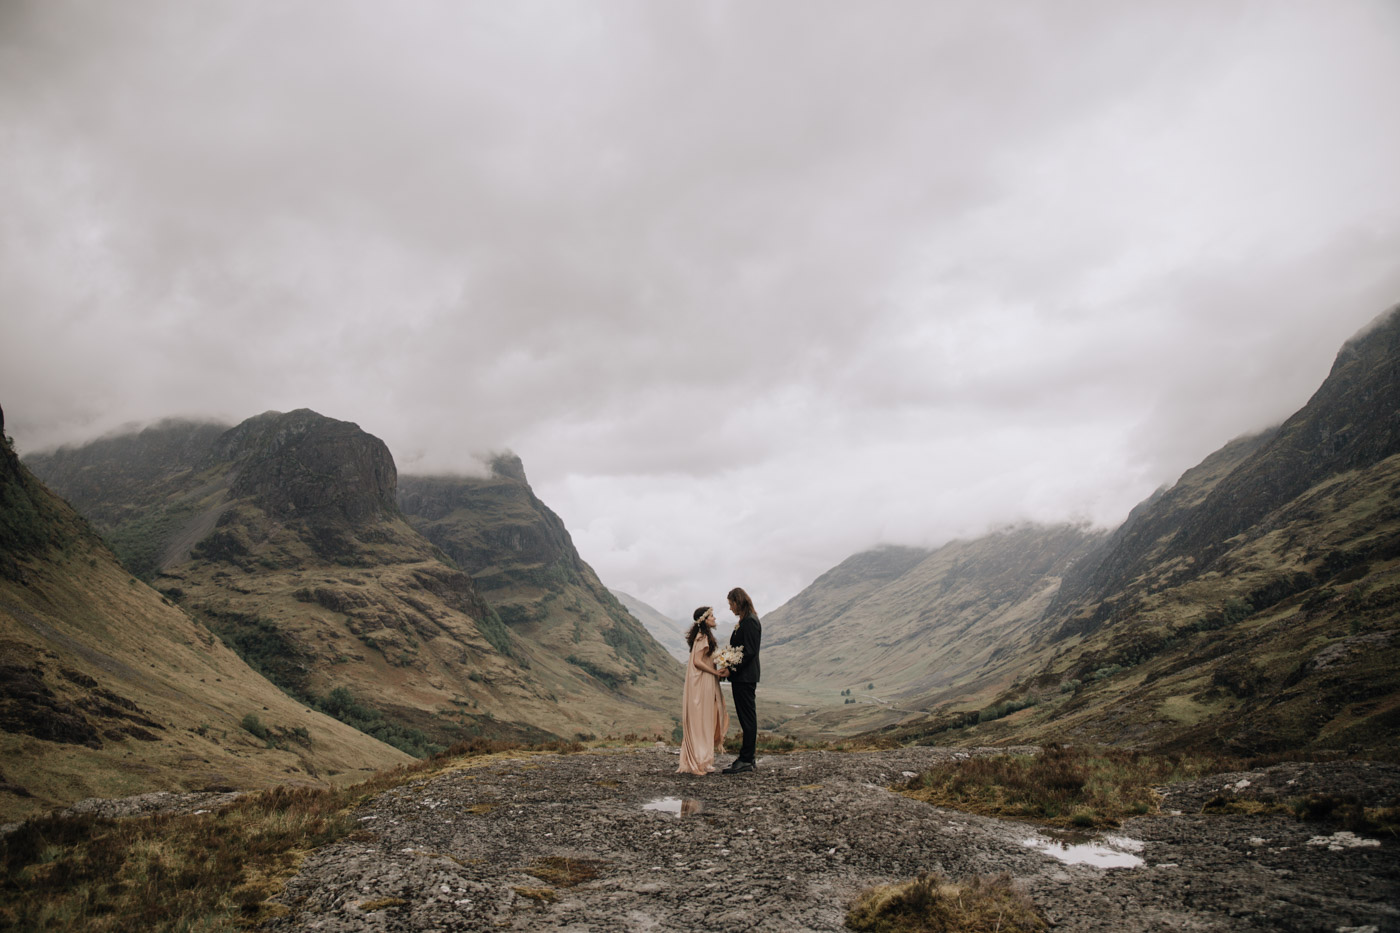 Adventure Elopement Scotland | Scottish Mountain Elopement Photographer.